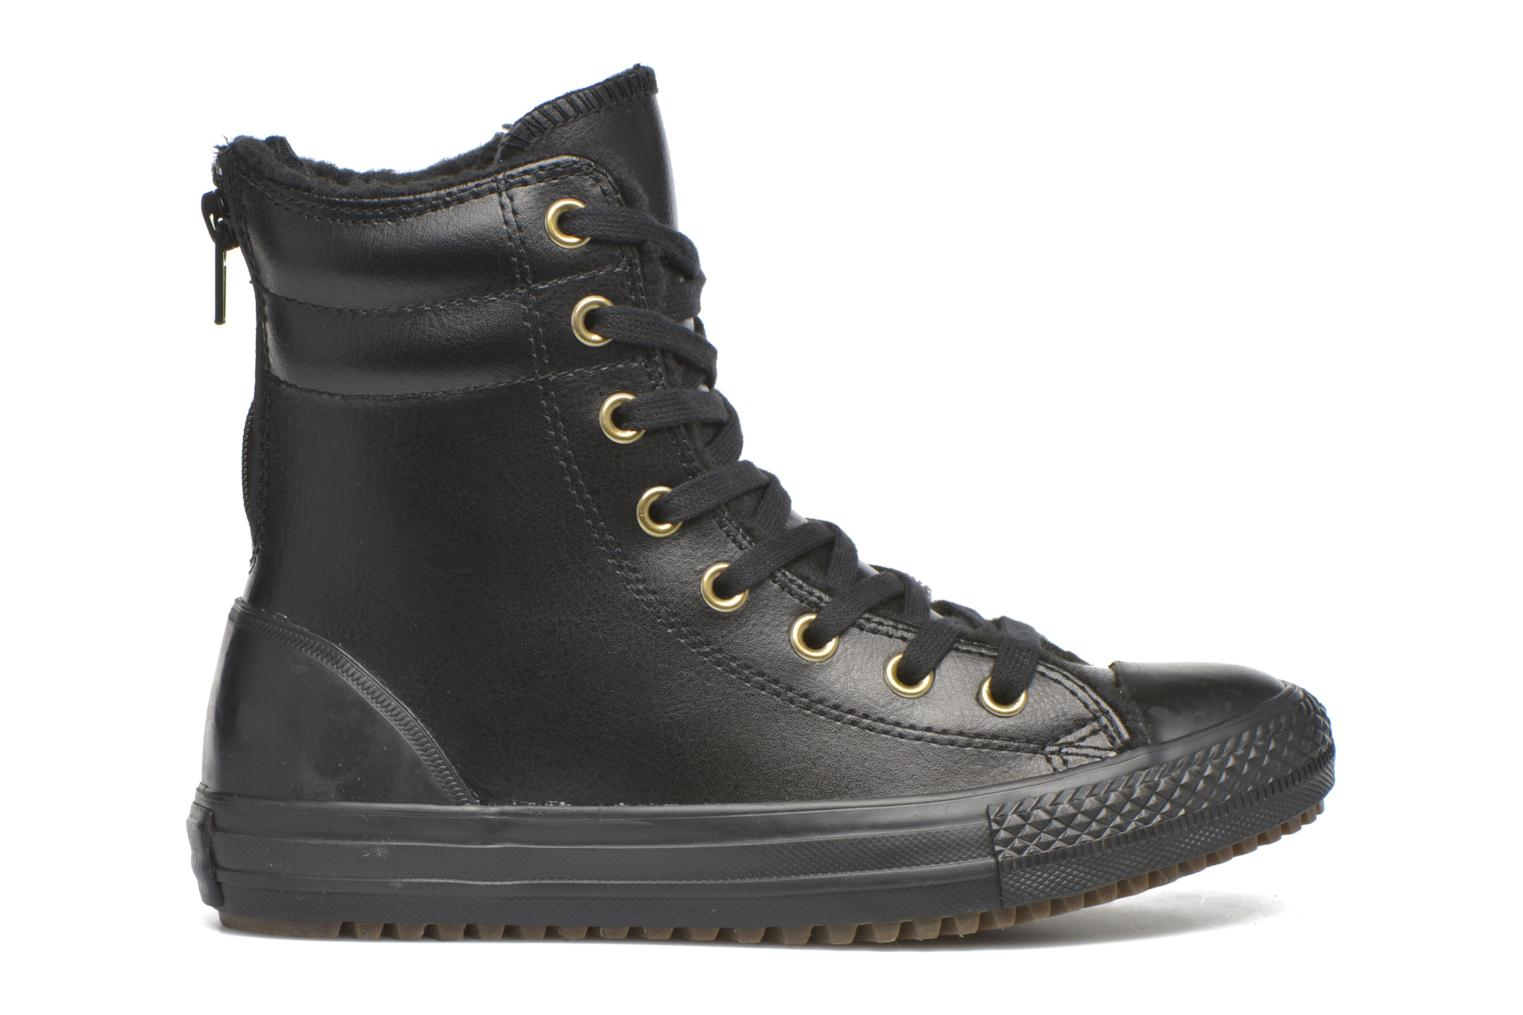 Chuck Taylor All Star Hi-Rise Boot X-Hi Black/black/black